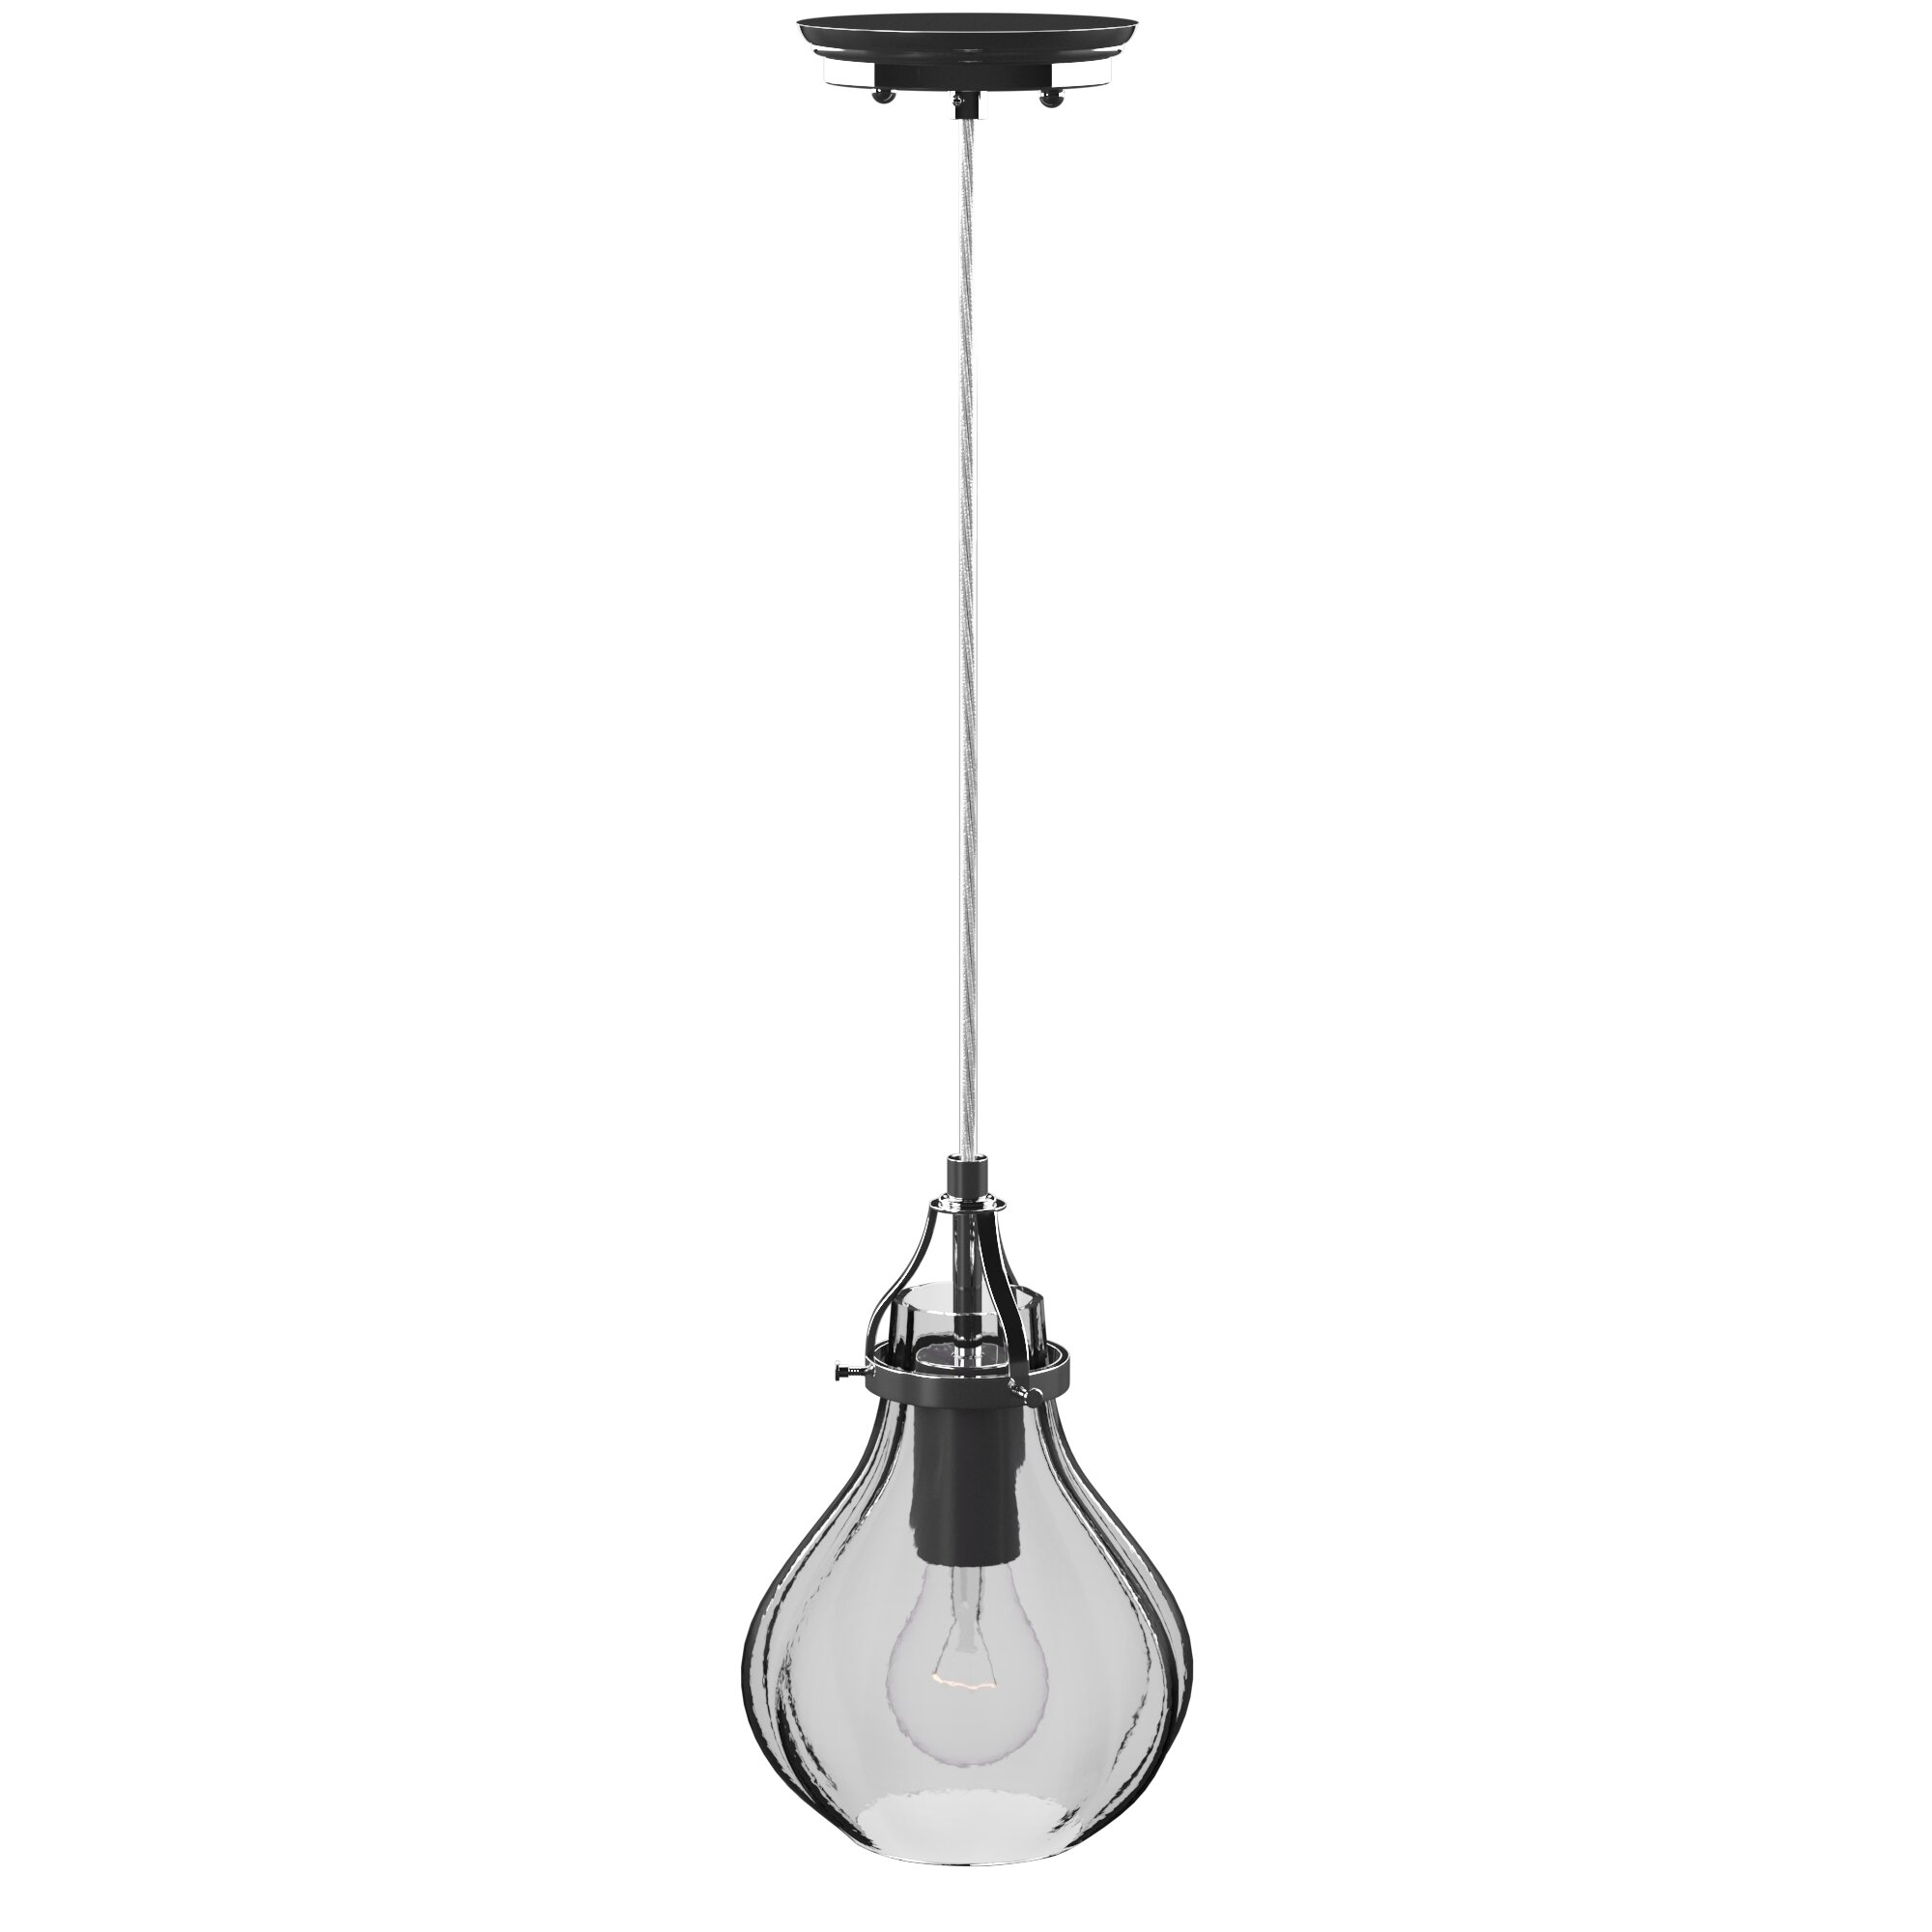 Orofino 1 Light Single Teardrop Pendant Regarding Neal 1 Light Single Teardrop Pendants (View 5 of 30)